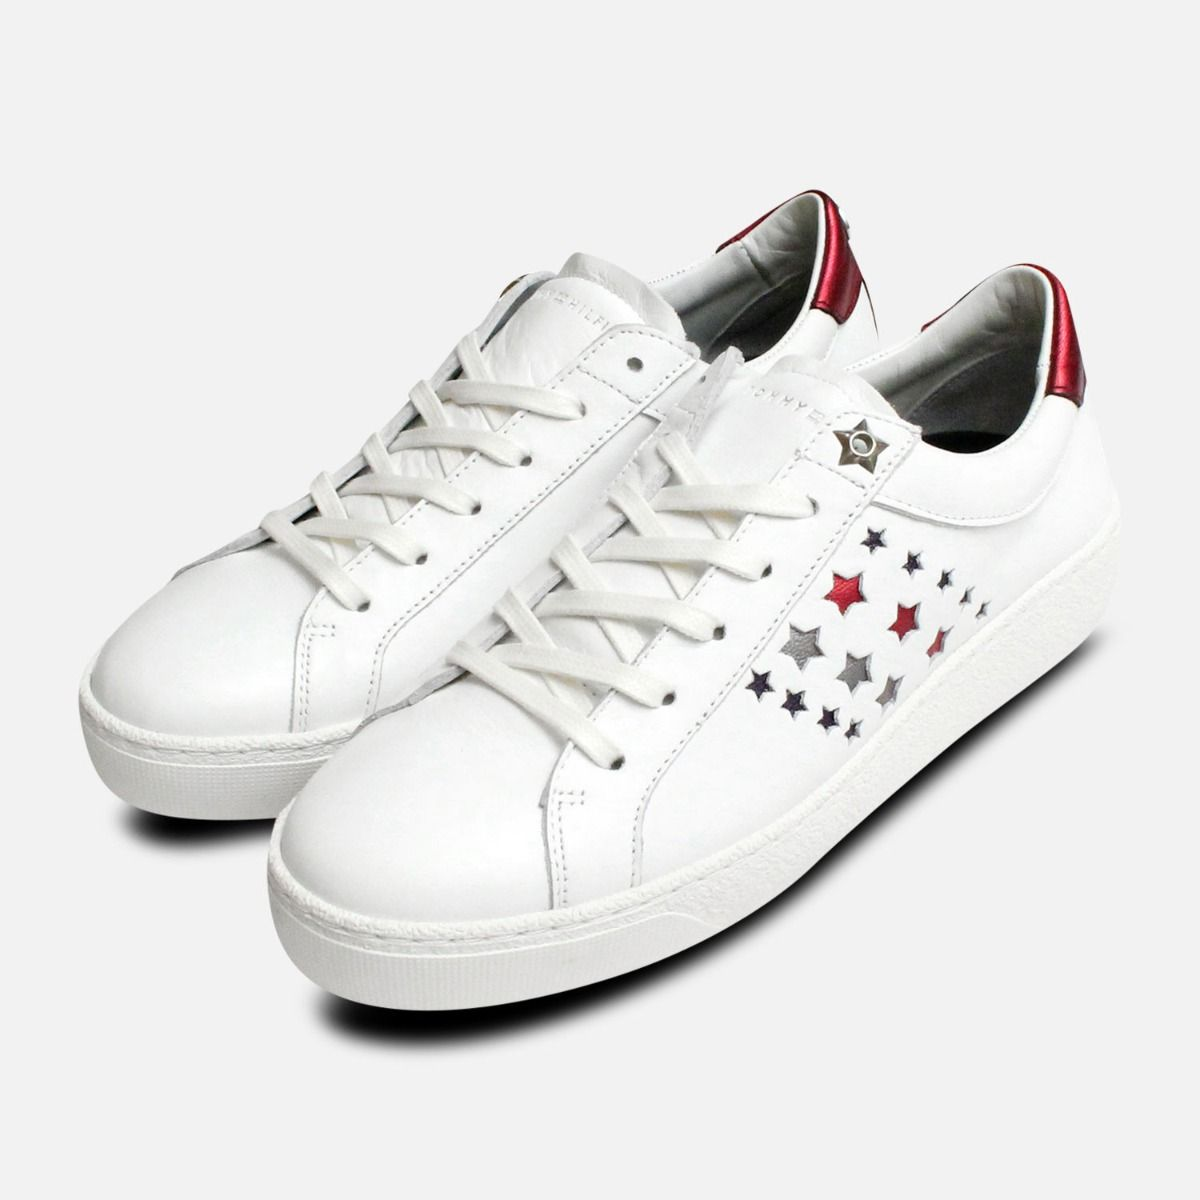 fd863c2fa8 Tommy Hilfiger Star Suzie Trainers in White Leather